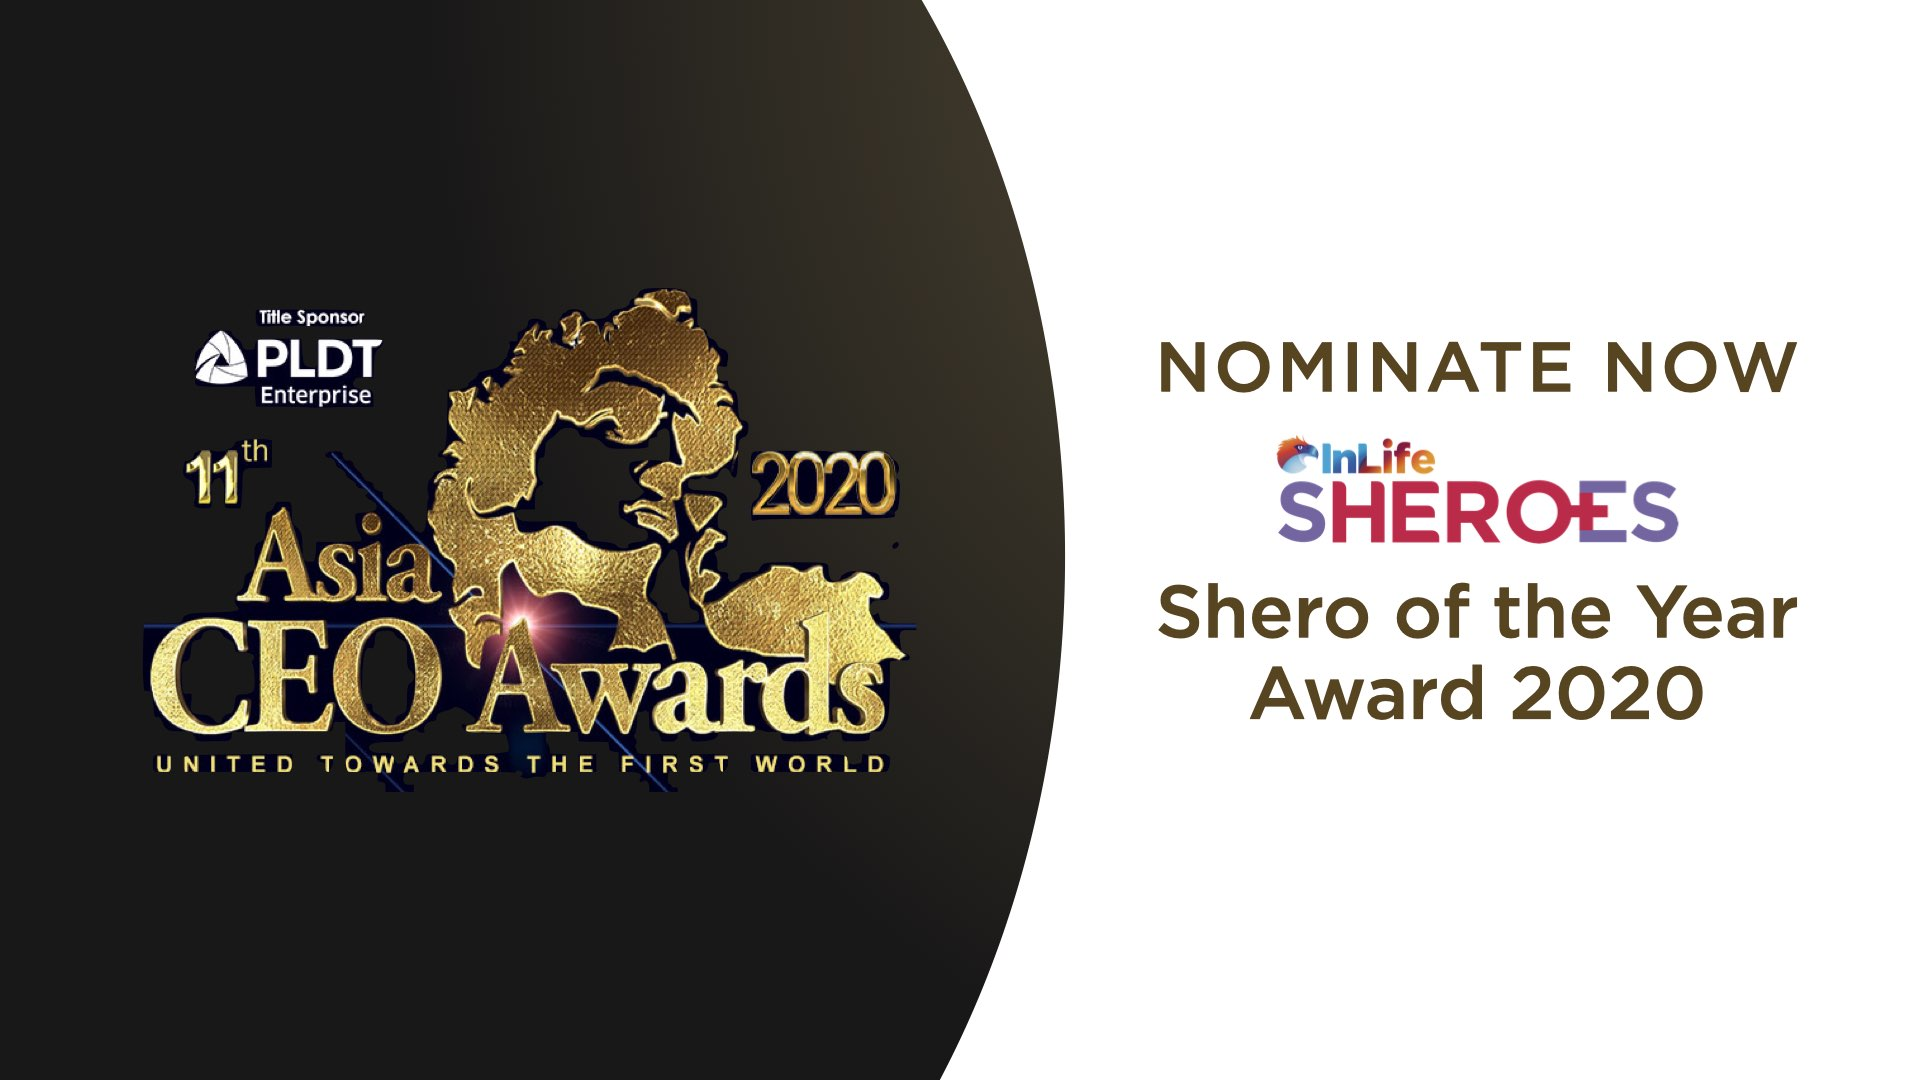 InLife calls for nominations to the Asia CEO InLife Shero of the Year Award 2020